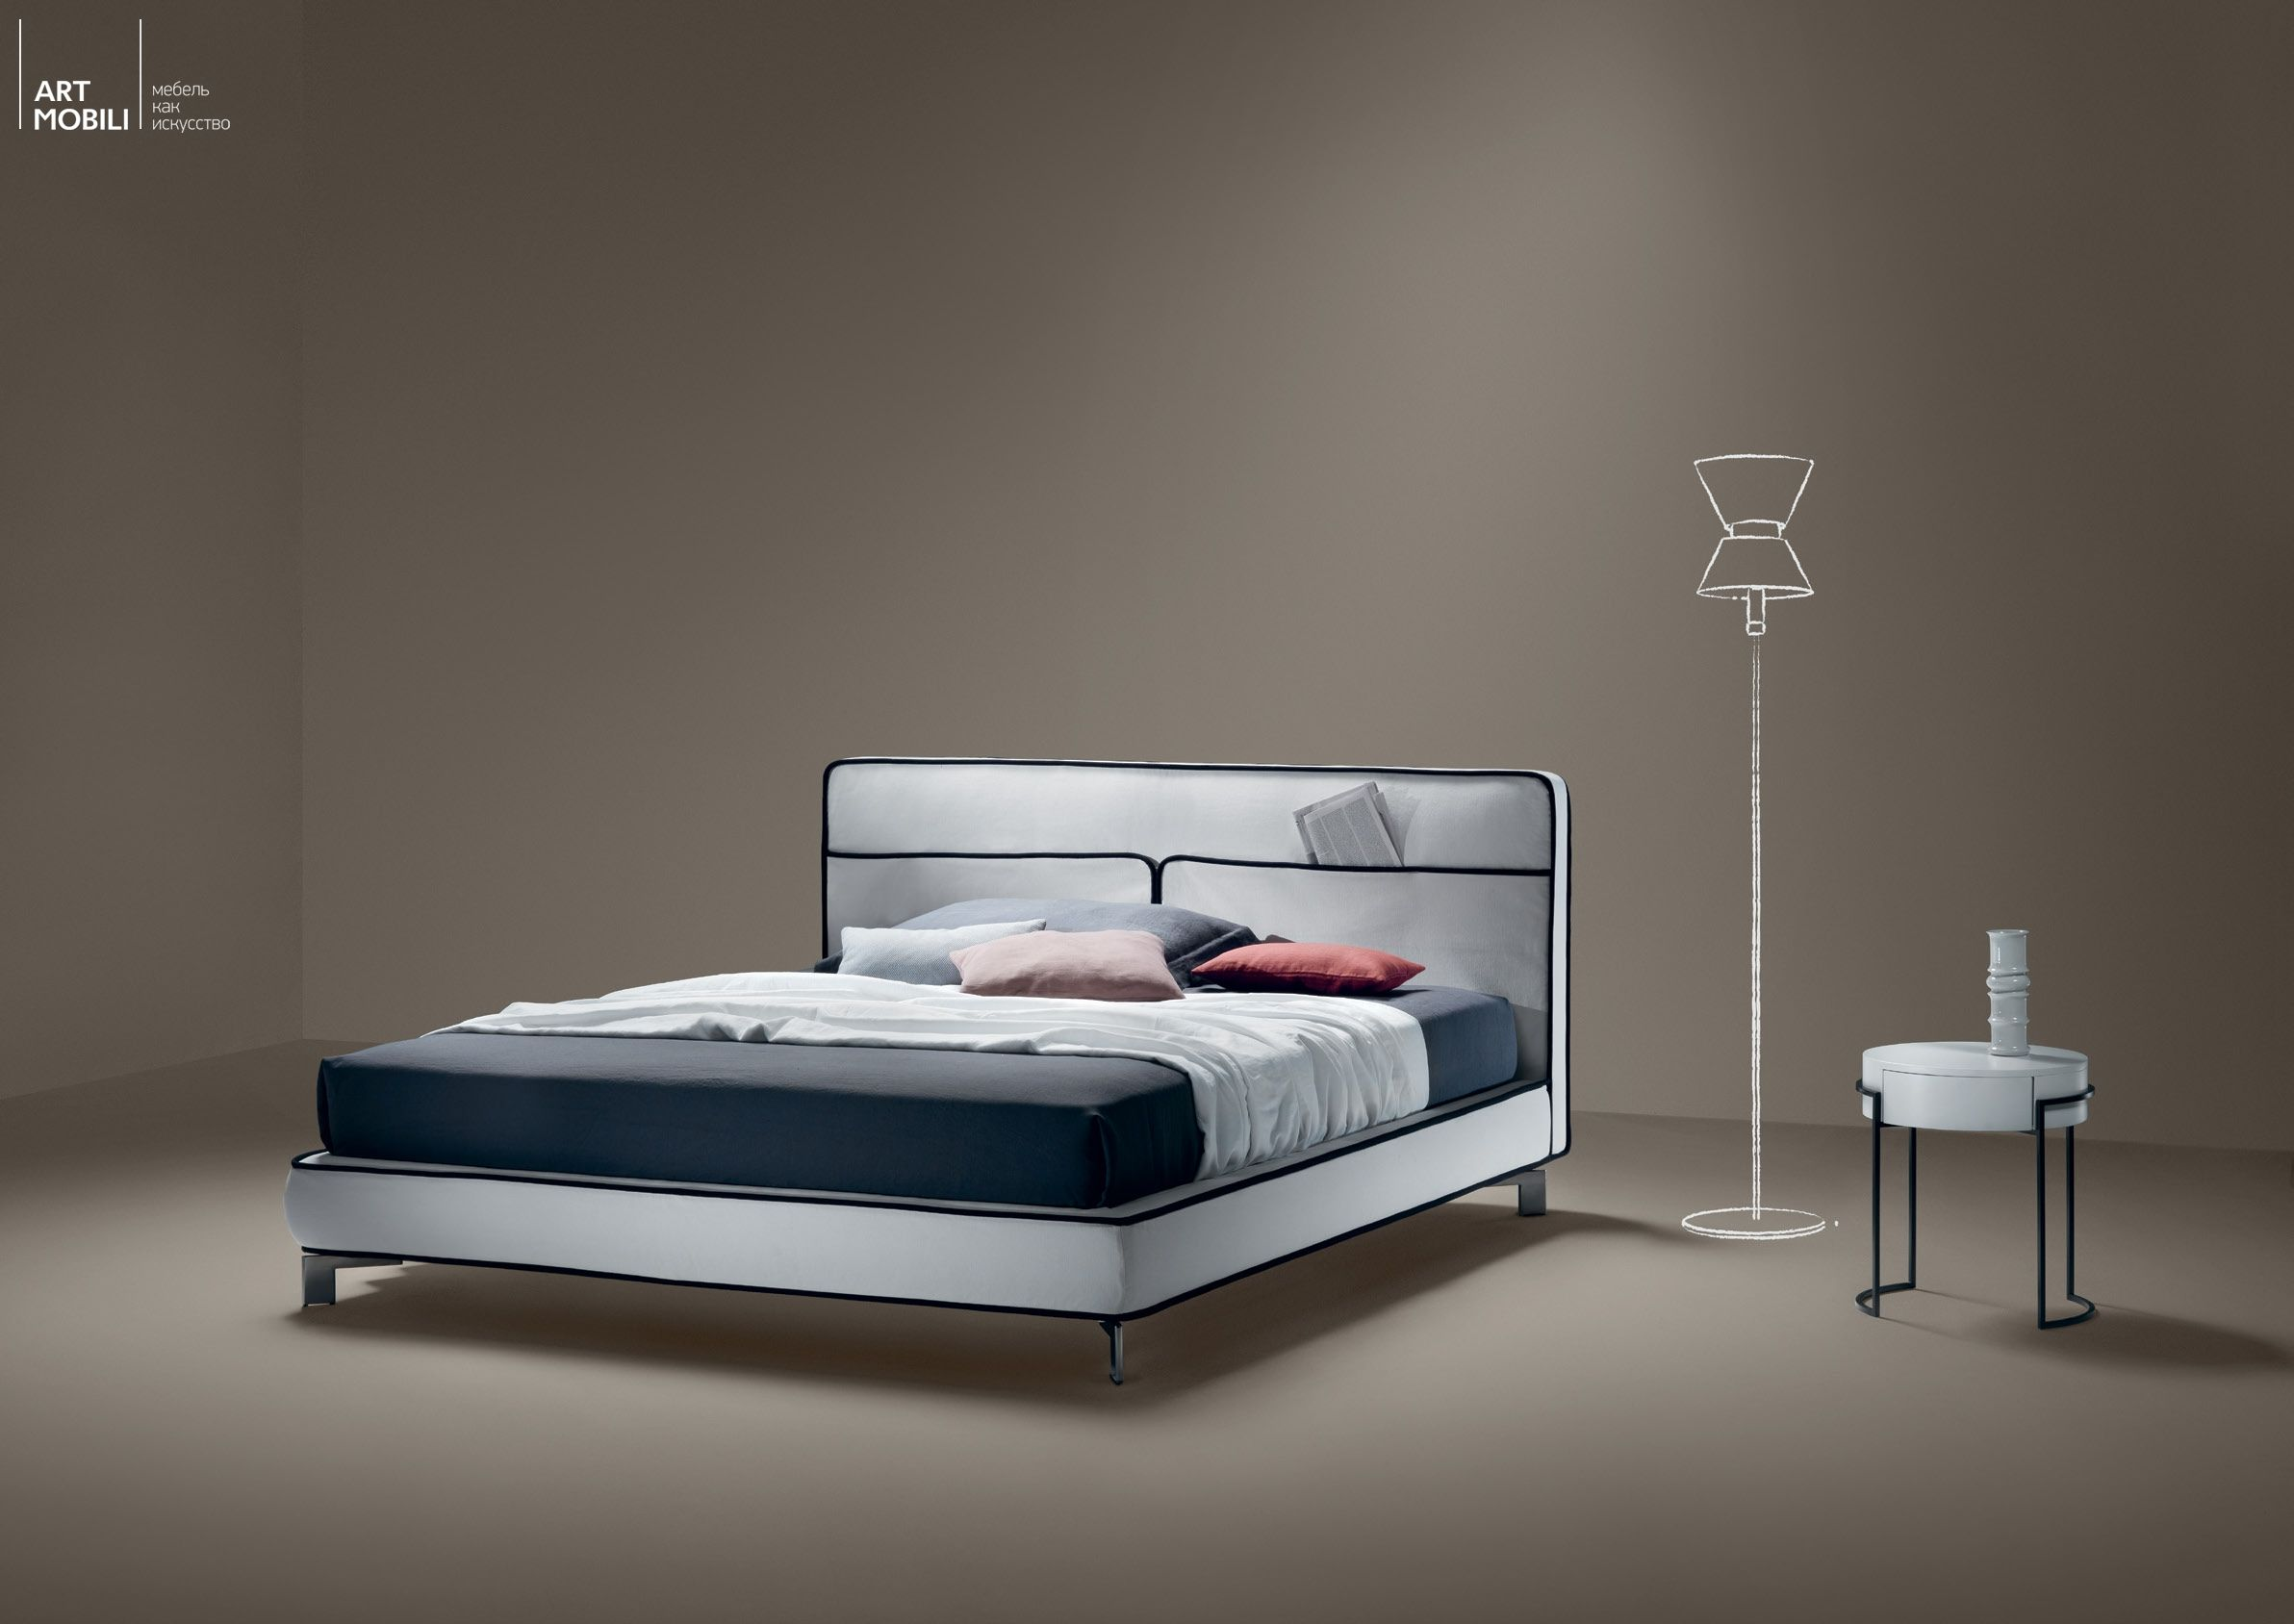 Axil Krovat Pario Indesign Collections Pinterest - Bohemian-bed-by-cinova-busnelli